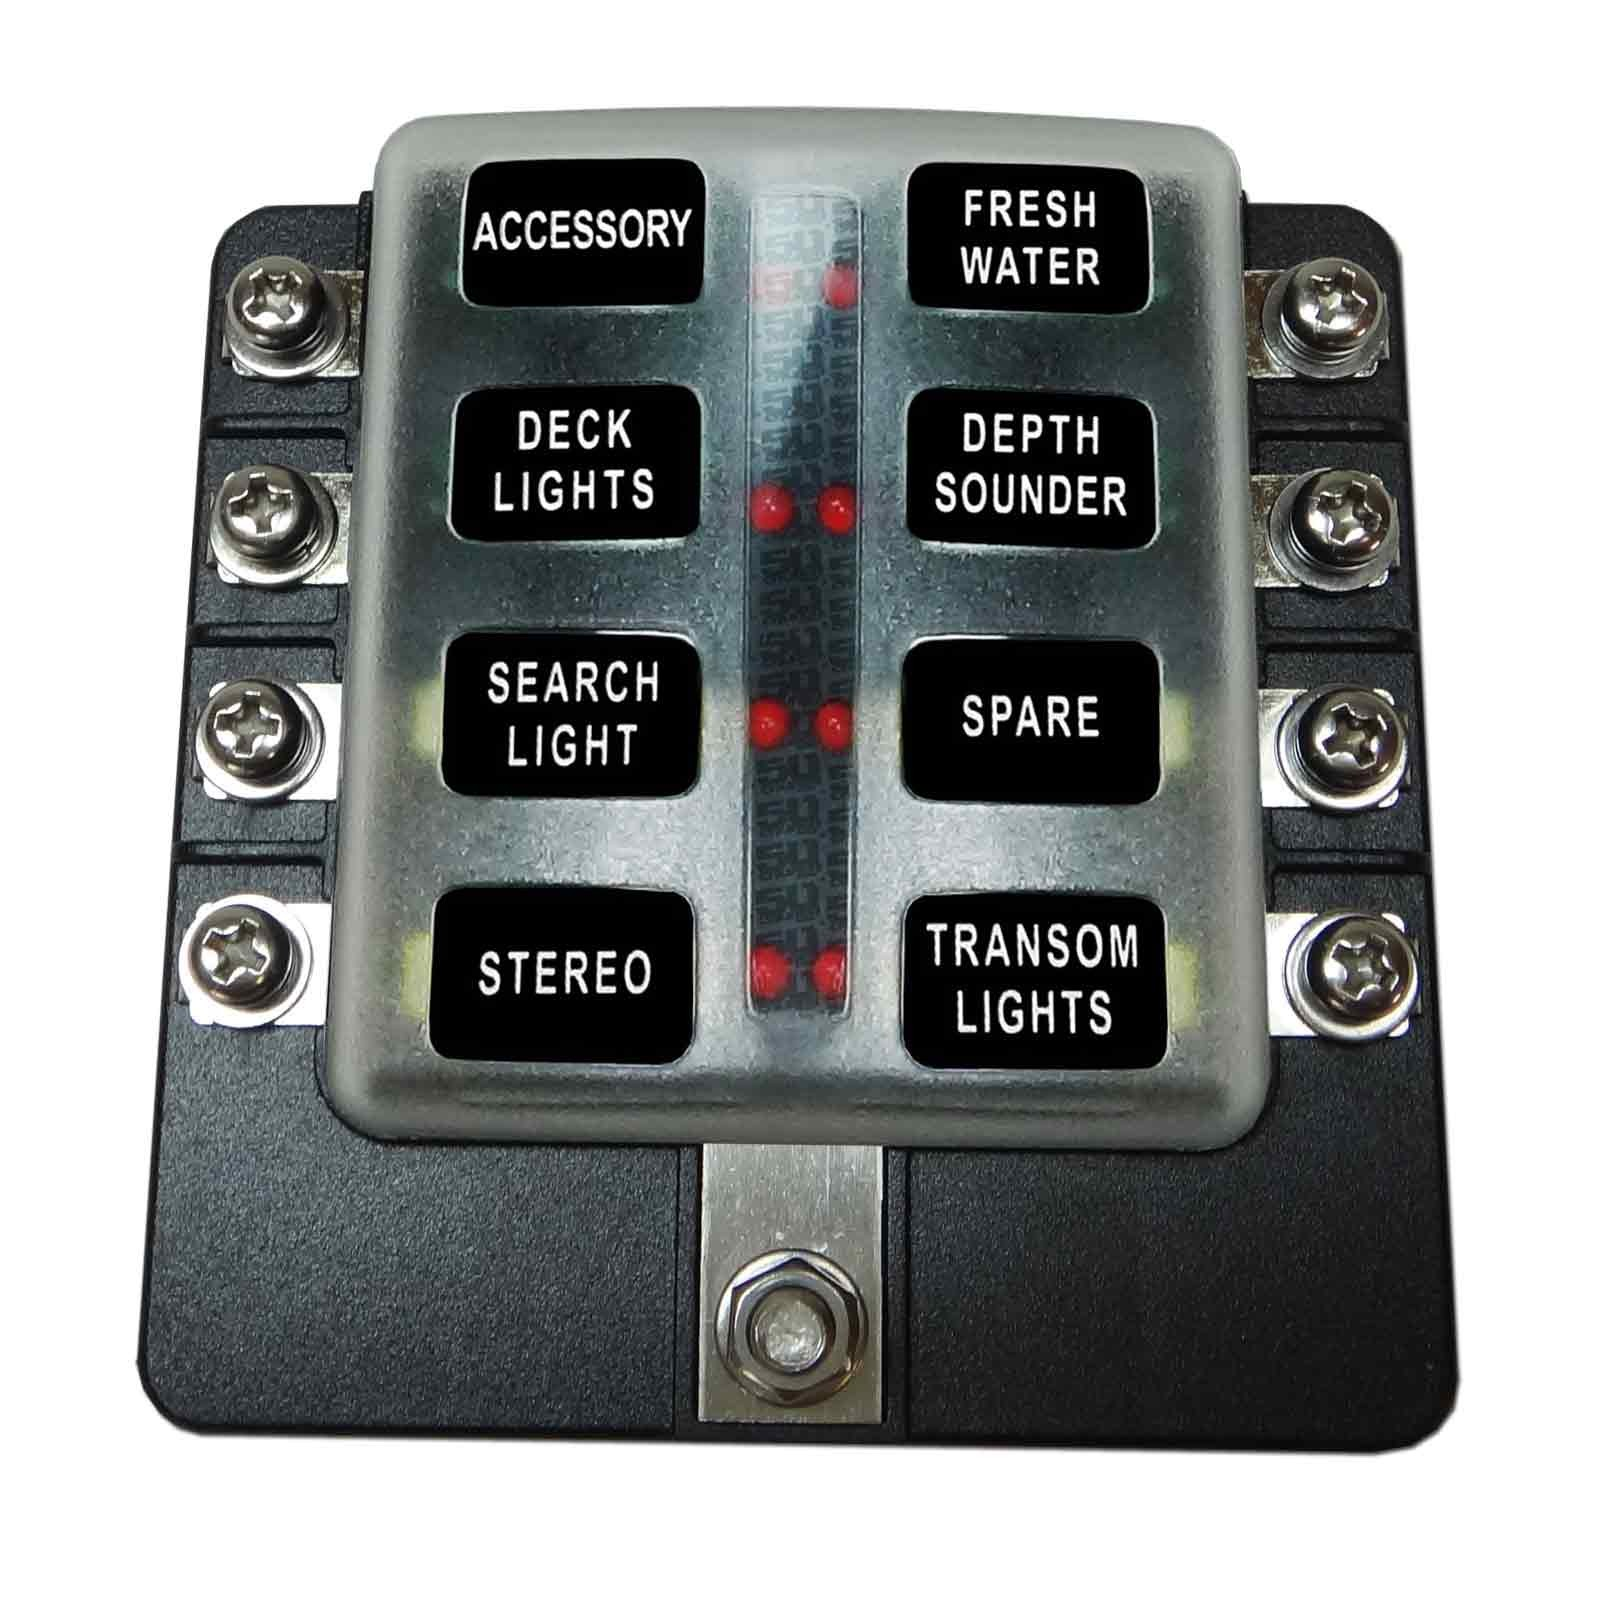 ... 8 Way Fuse Block - Screw Terminals - LED Indicators ...